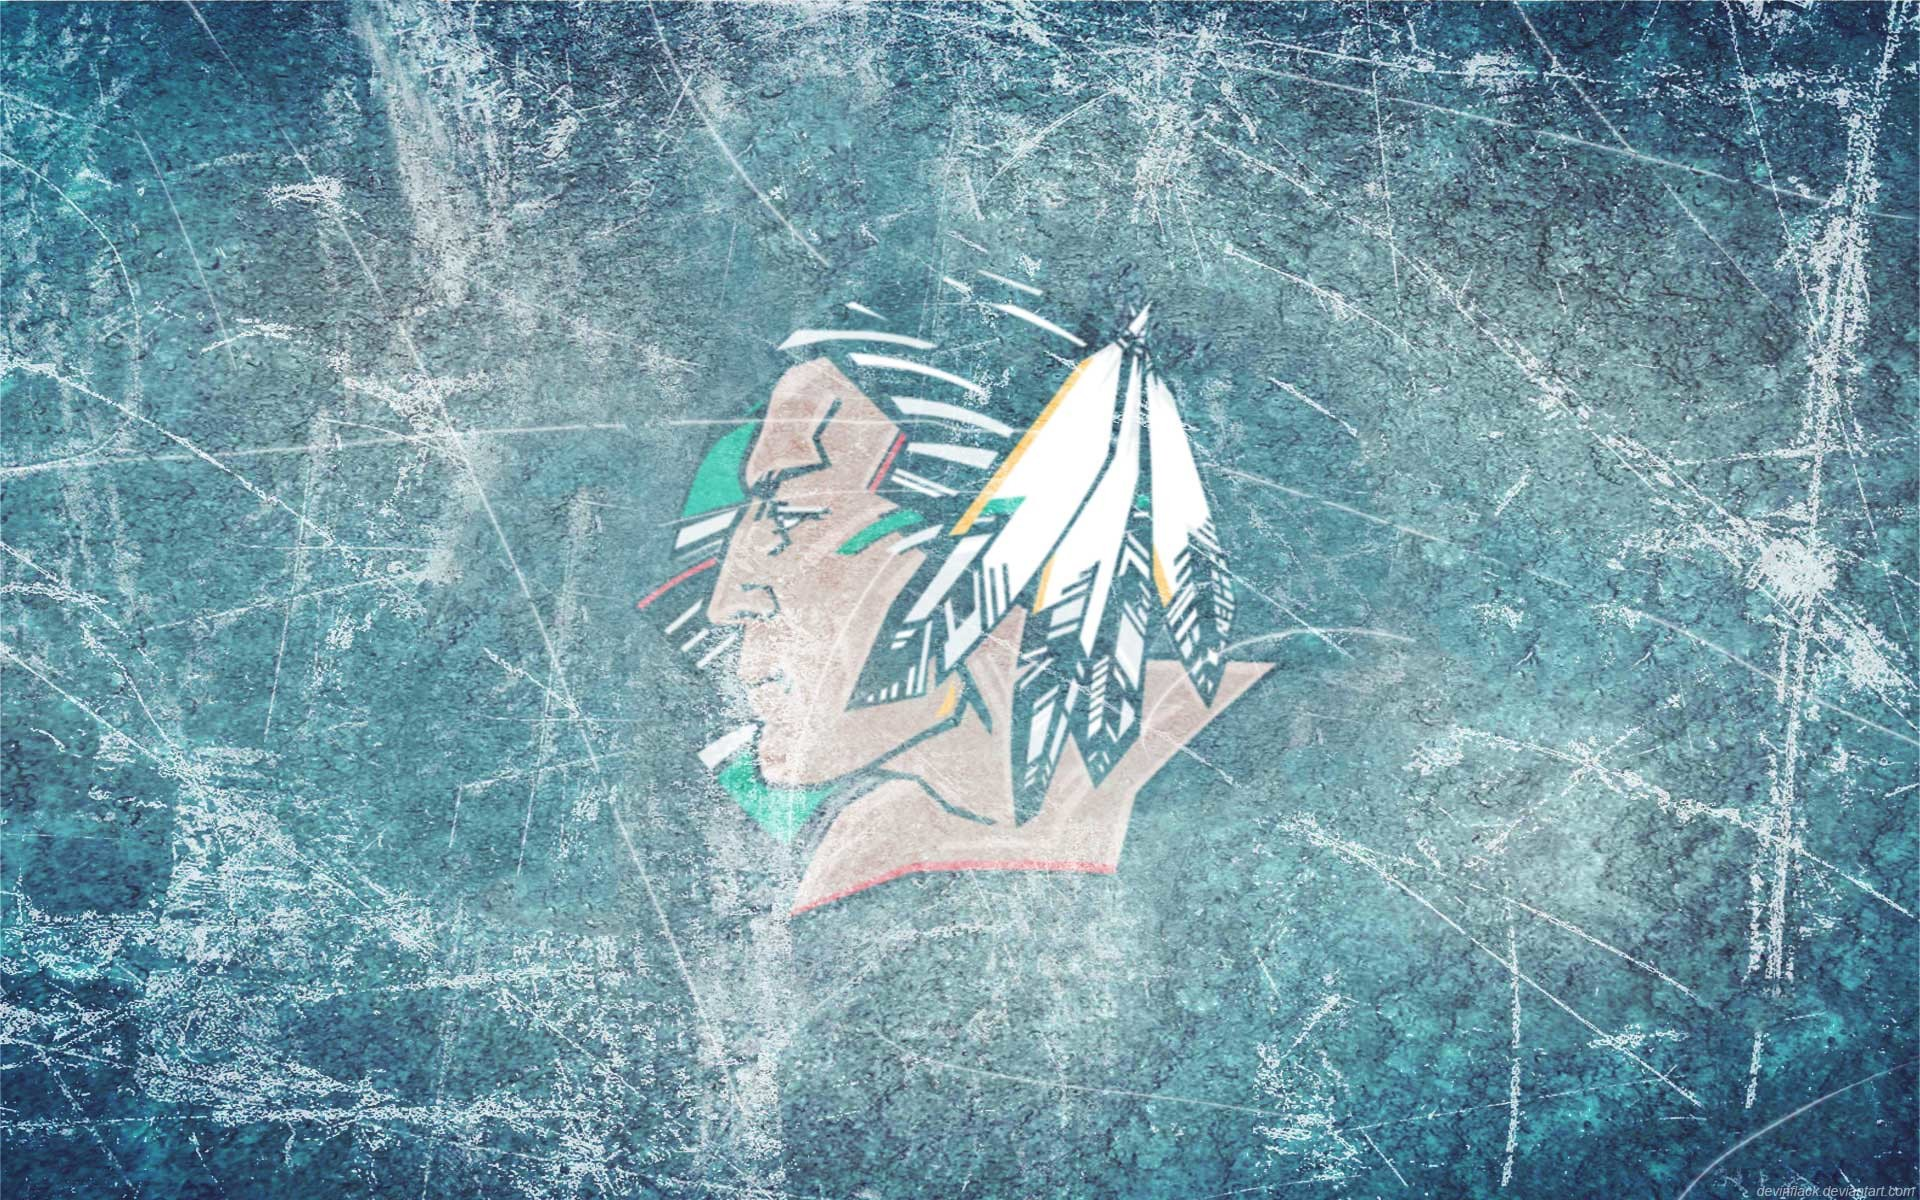 Res: 1920x1200, Free Wallpapers - Fighting Sioux Black Ice wallpaper